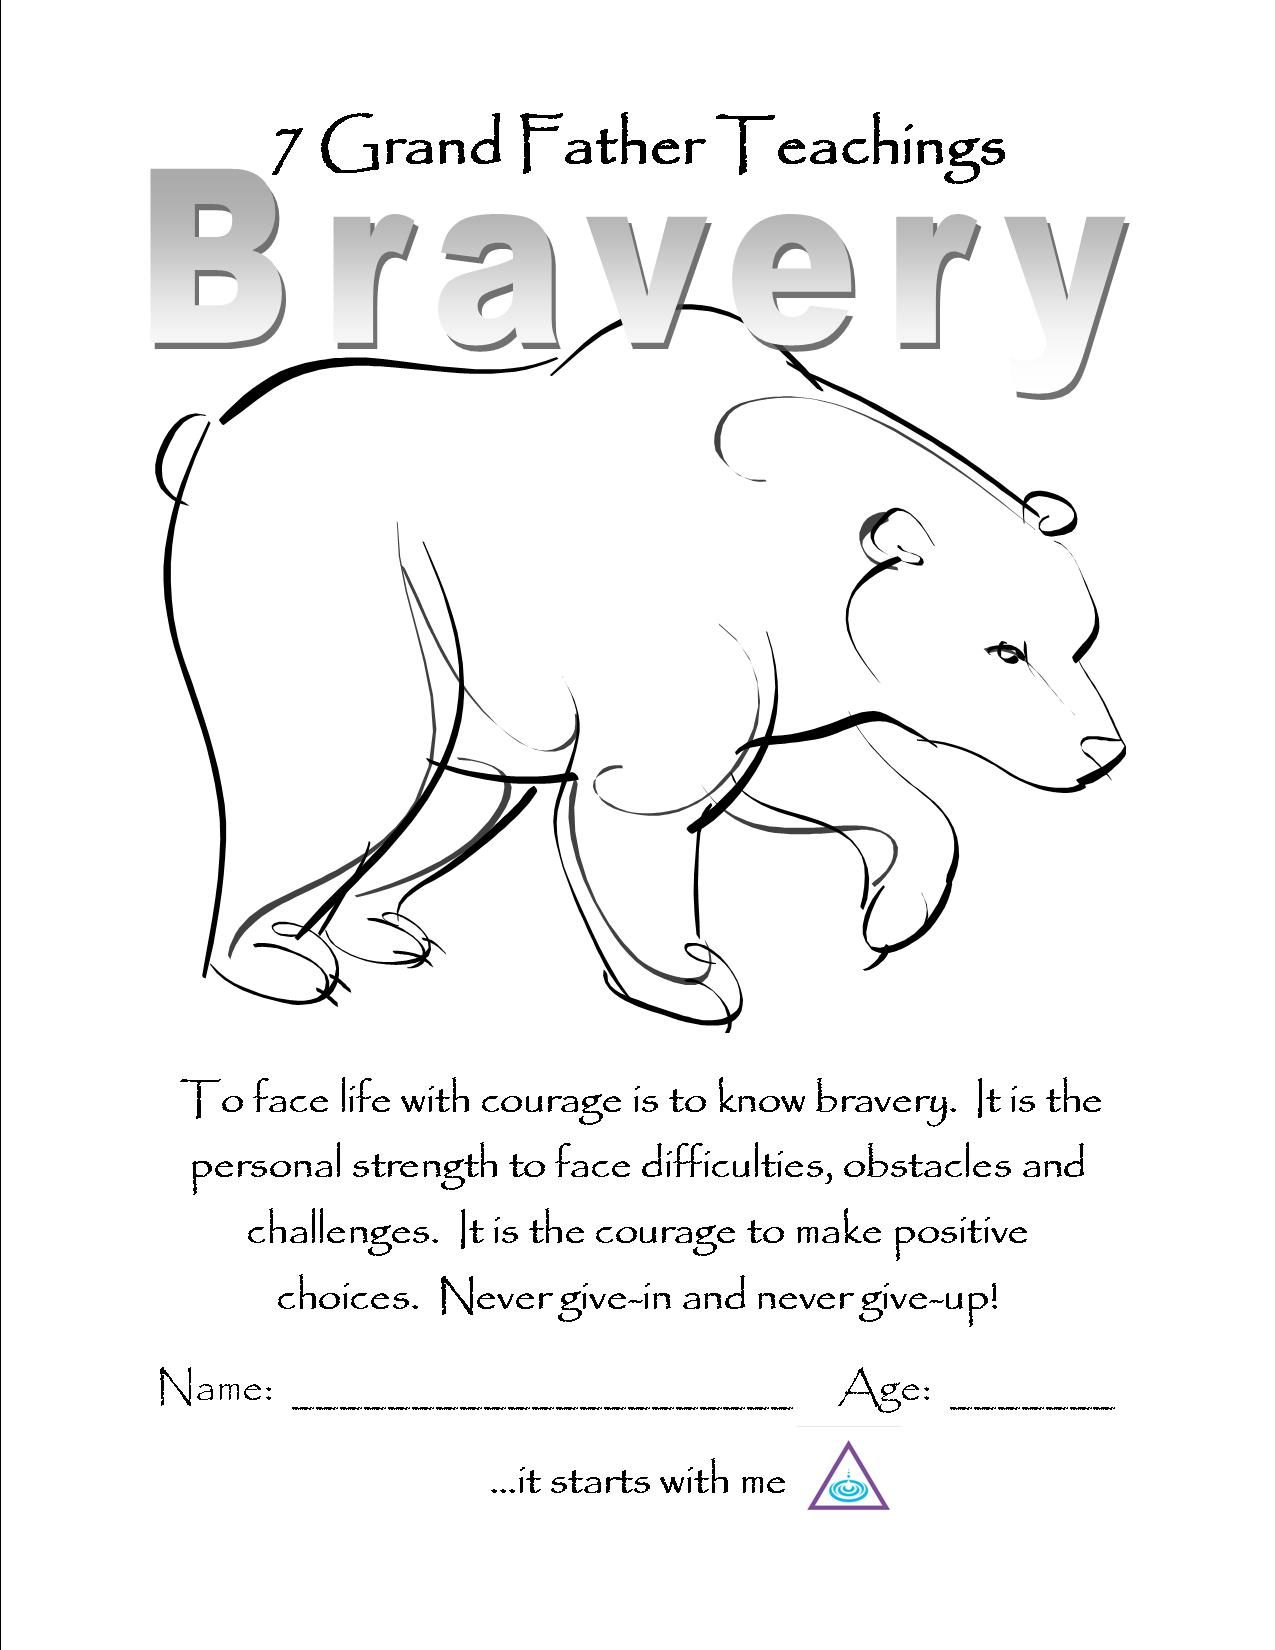 7 teachings coloring pages - Bravery Color Page